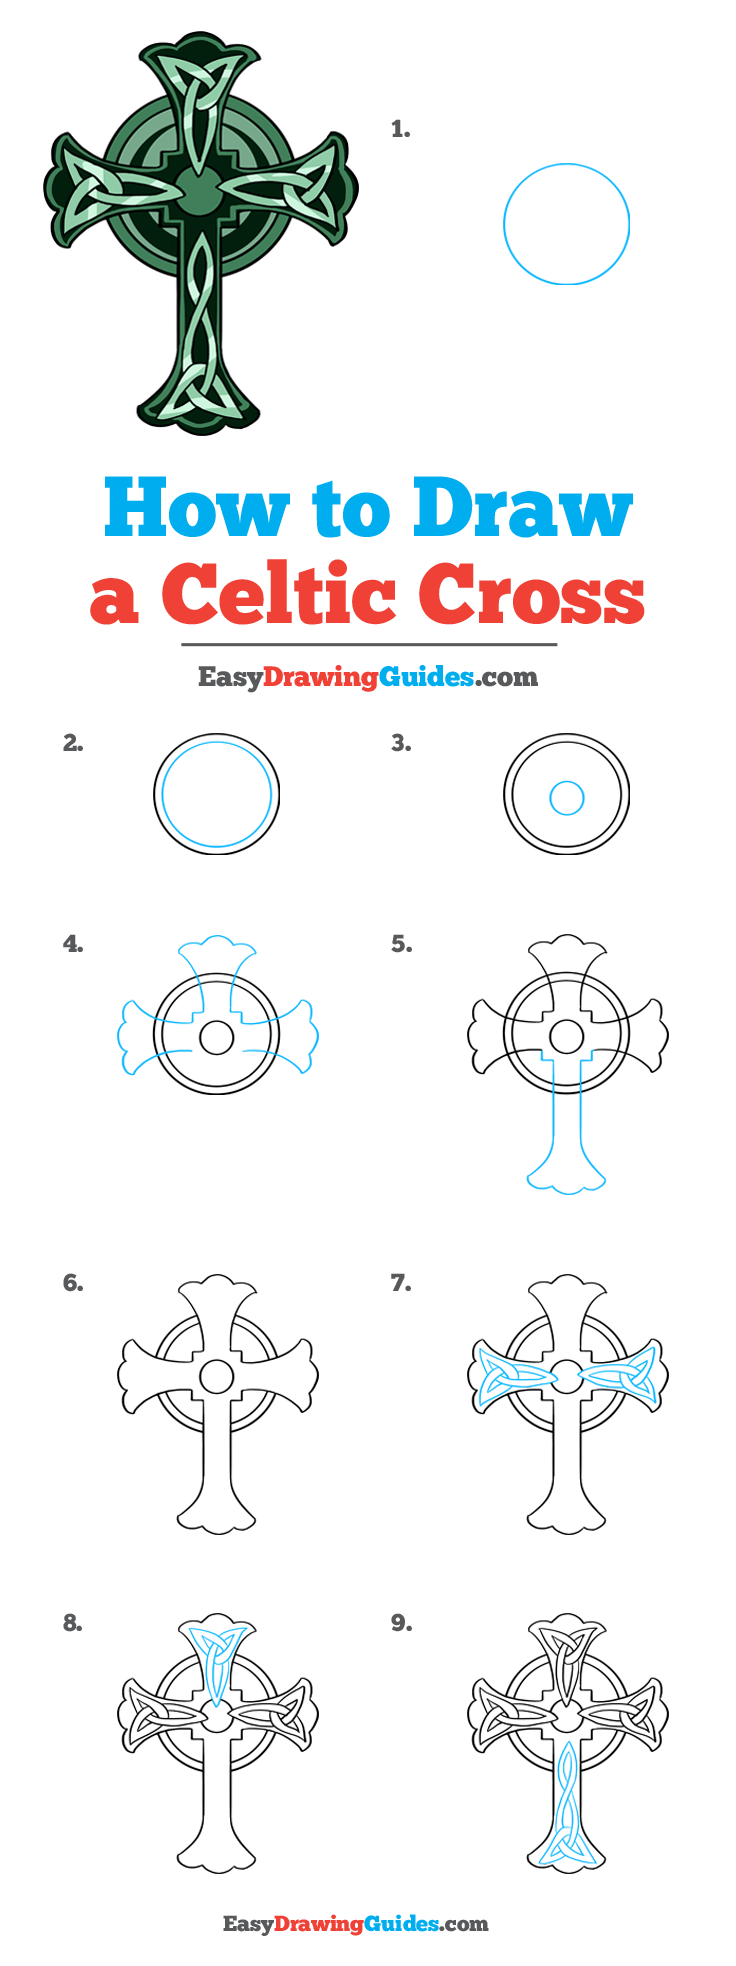 How to Draw a Celtic Cross Step by Step Tutorial Image